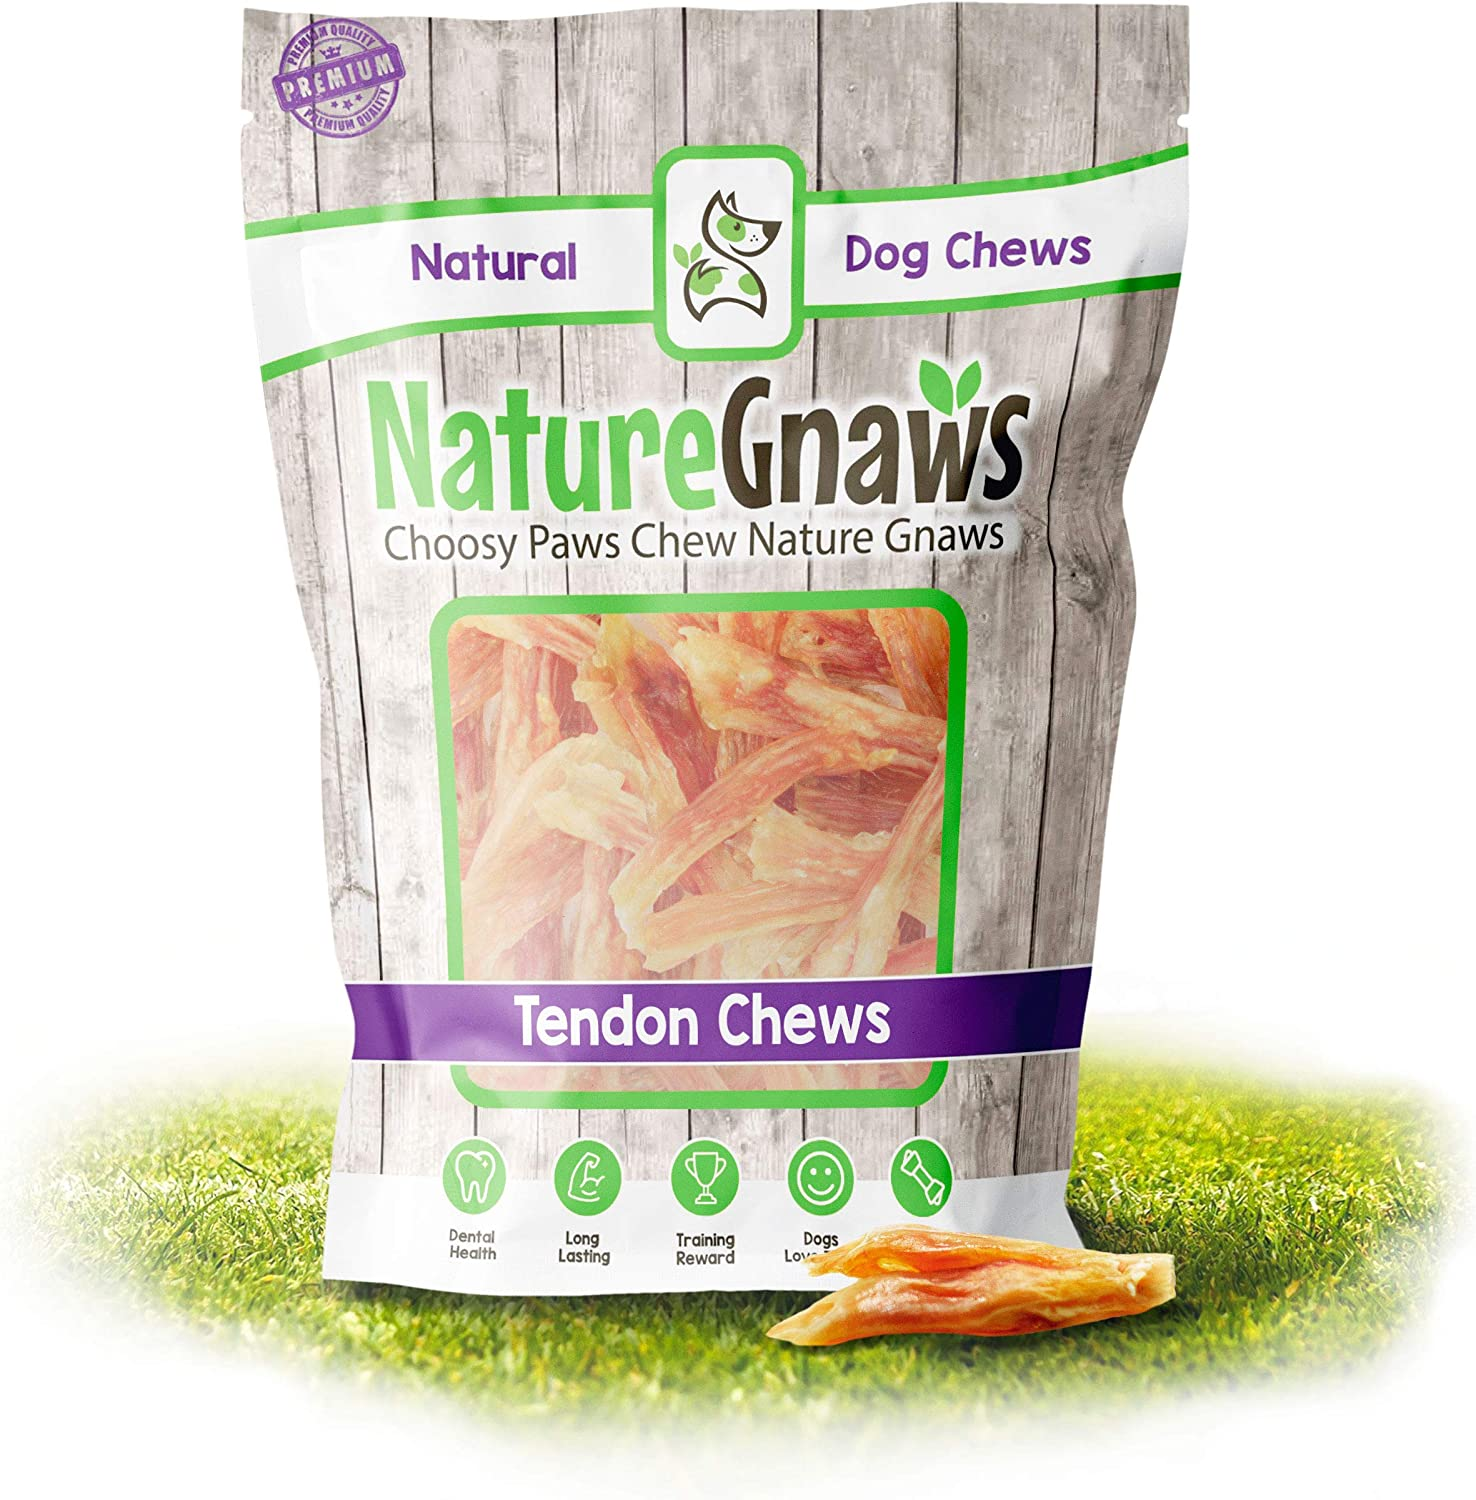 Nature Gnaws Tendons for Dogs - Premium Natural Beef Sticks - Simple Single Ingredient Tasty Dog Chew Treats - Rawhide Free - Bites (24 Count)